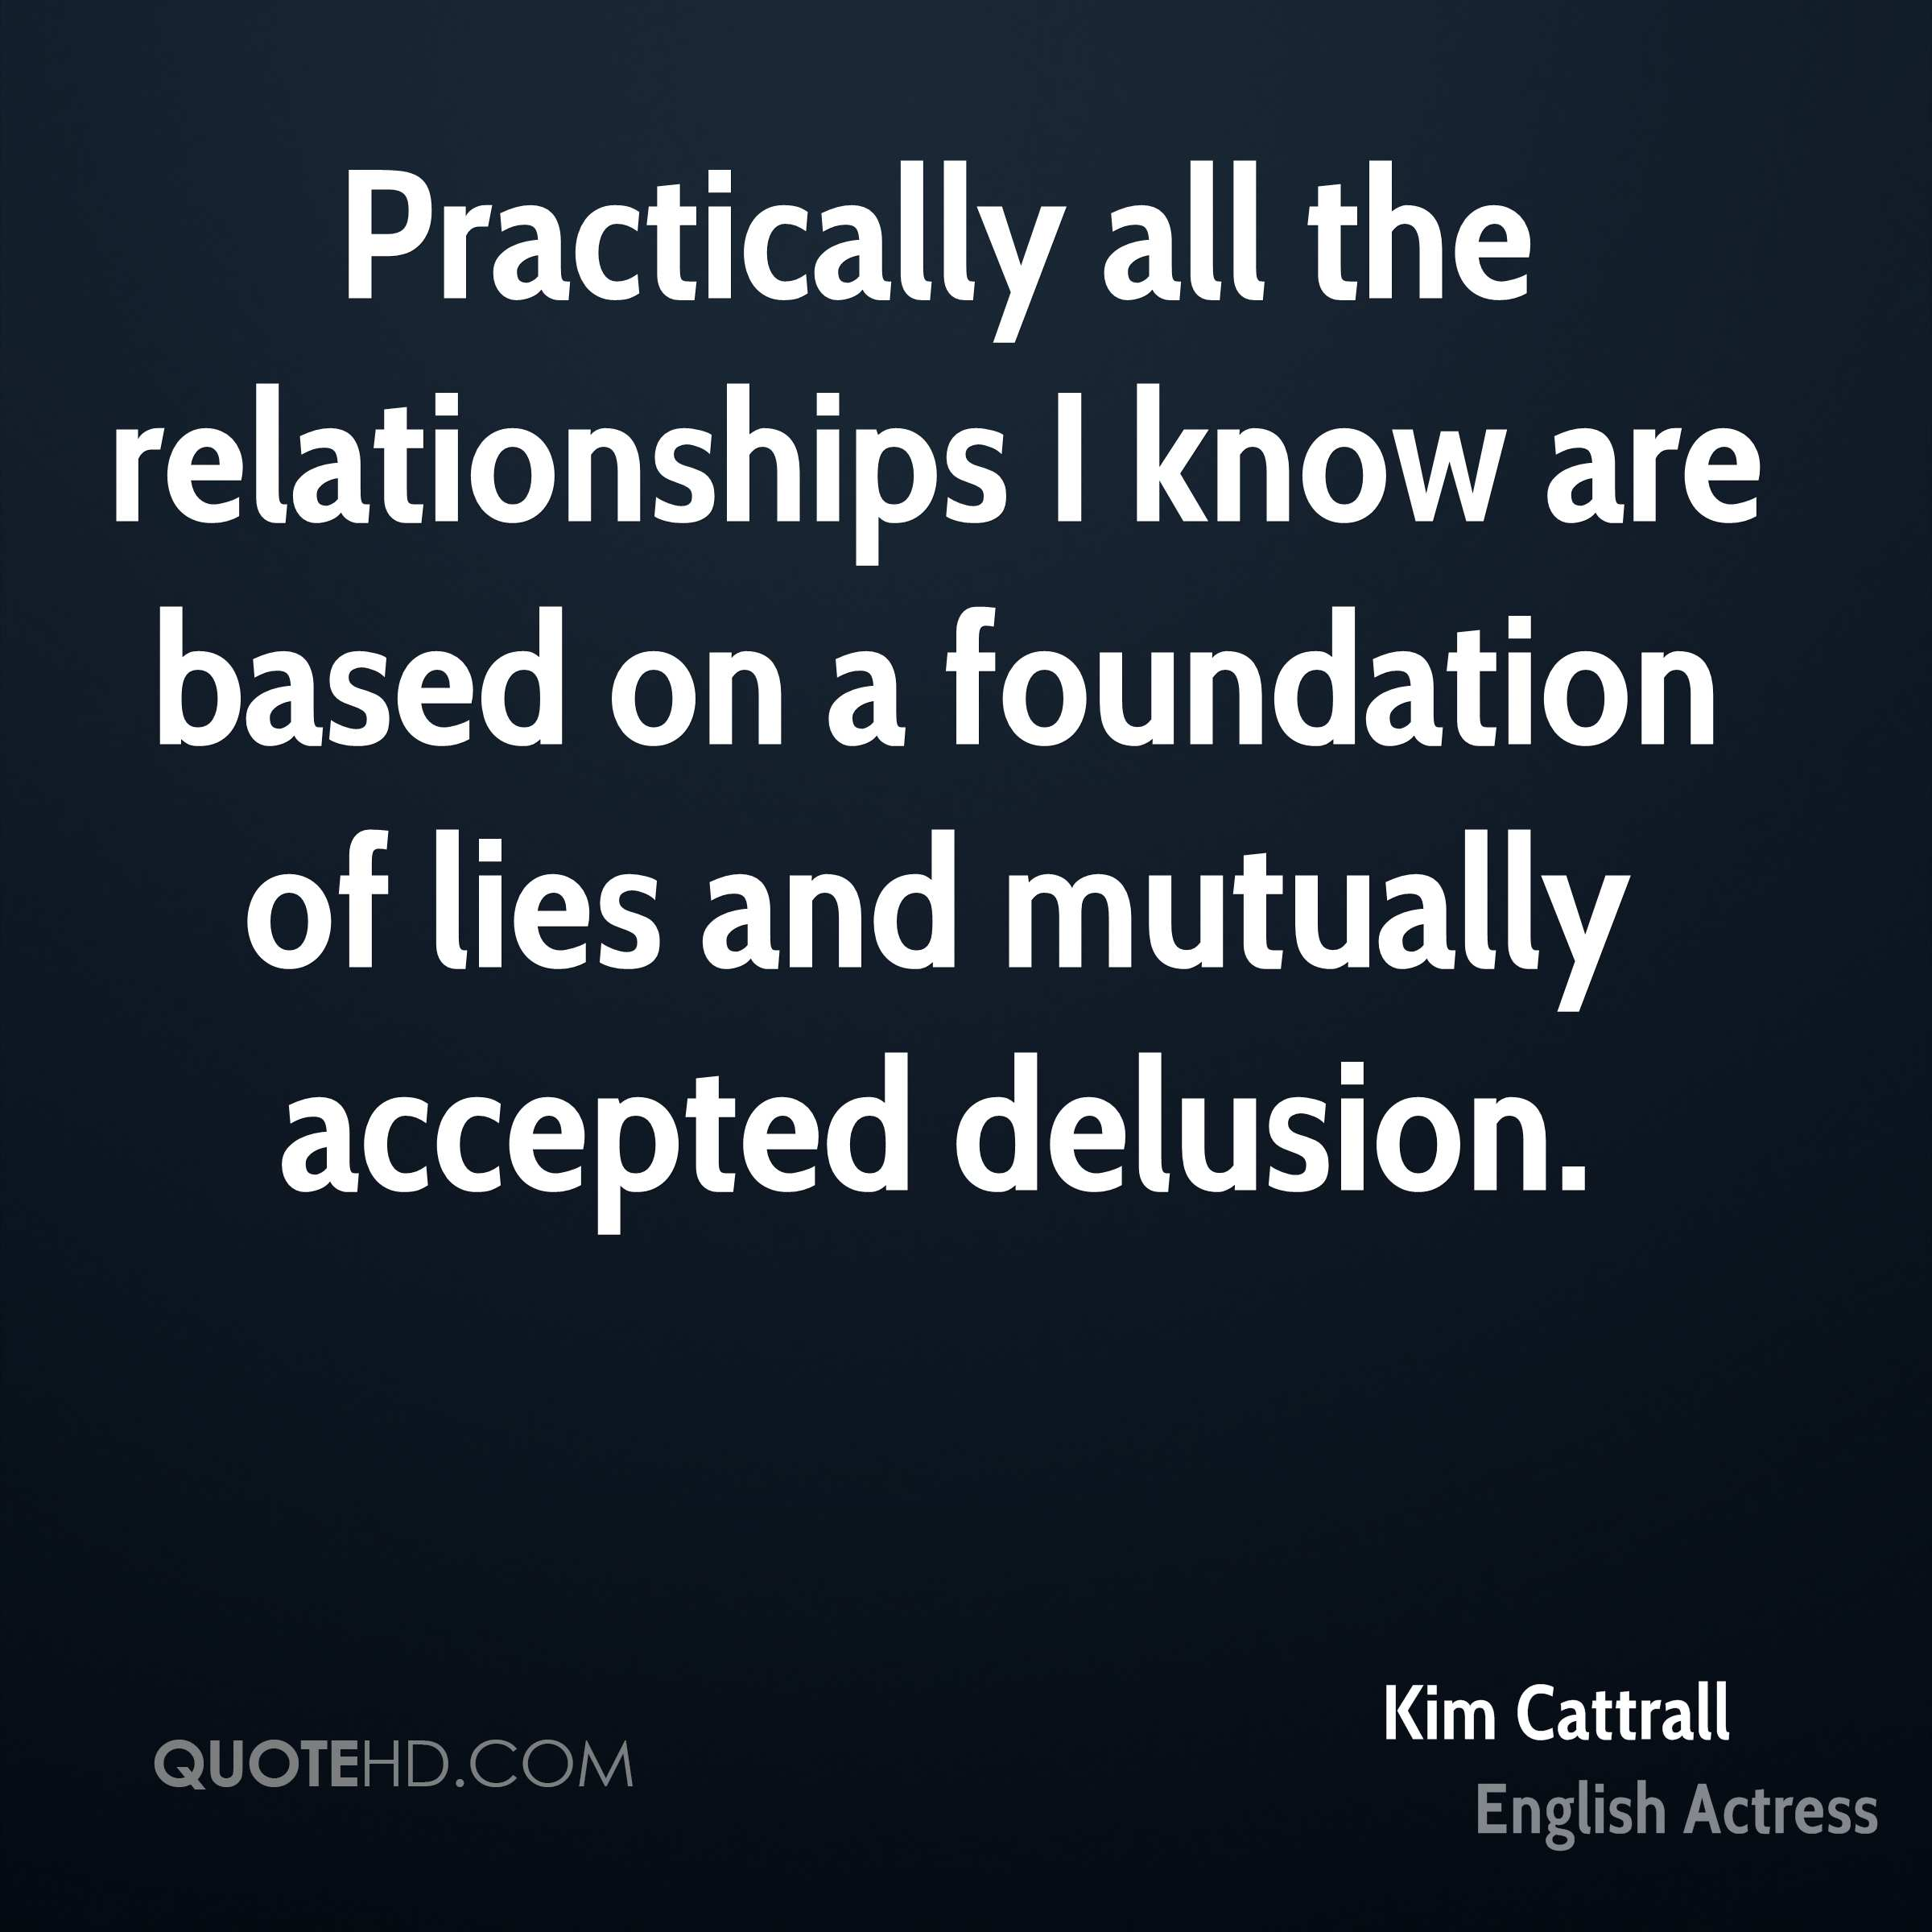 Practically all the relationships I know are based on a foundation of lies and mutually accepted delusion.